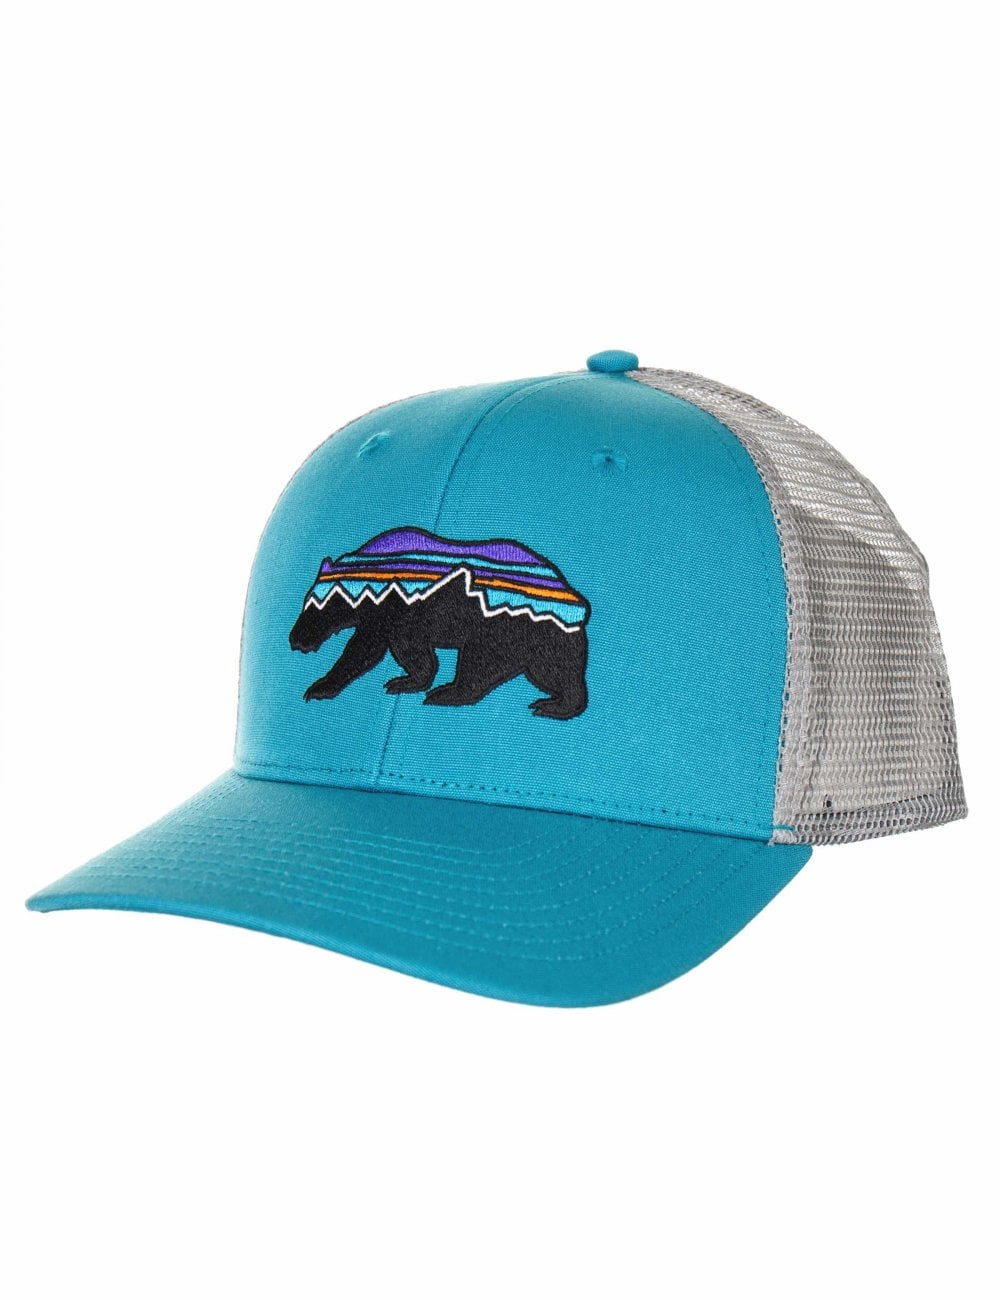 538331c9 Patagonia Fitz Roy Bear Trucker Hat - Mako Blue - Accessories from ...